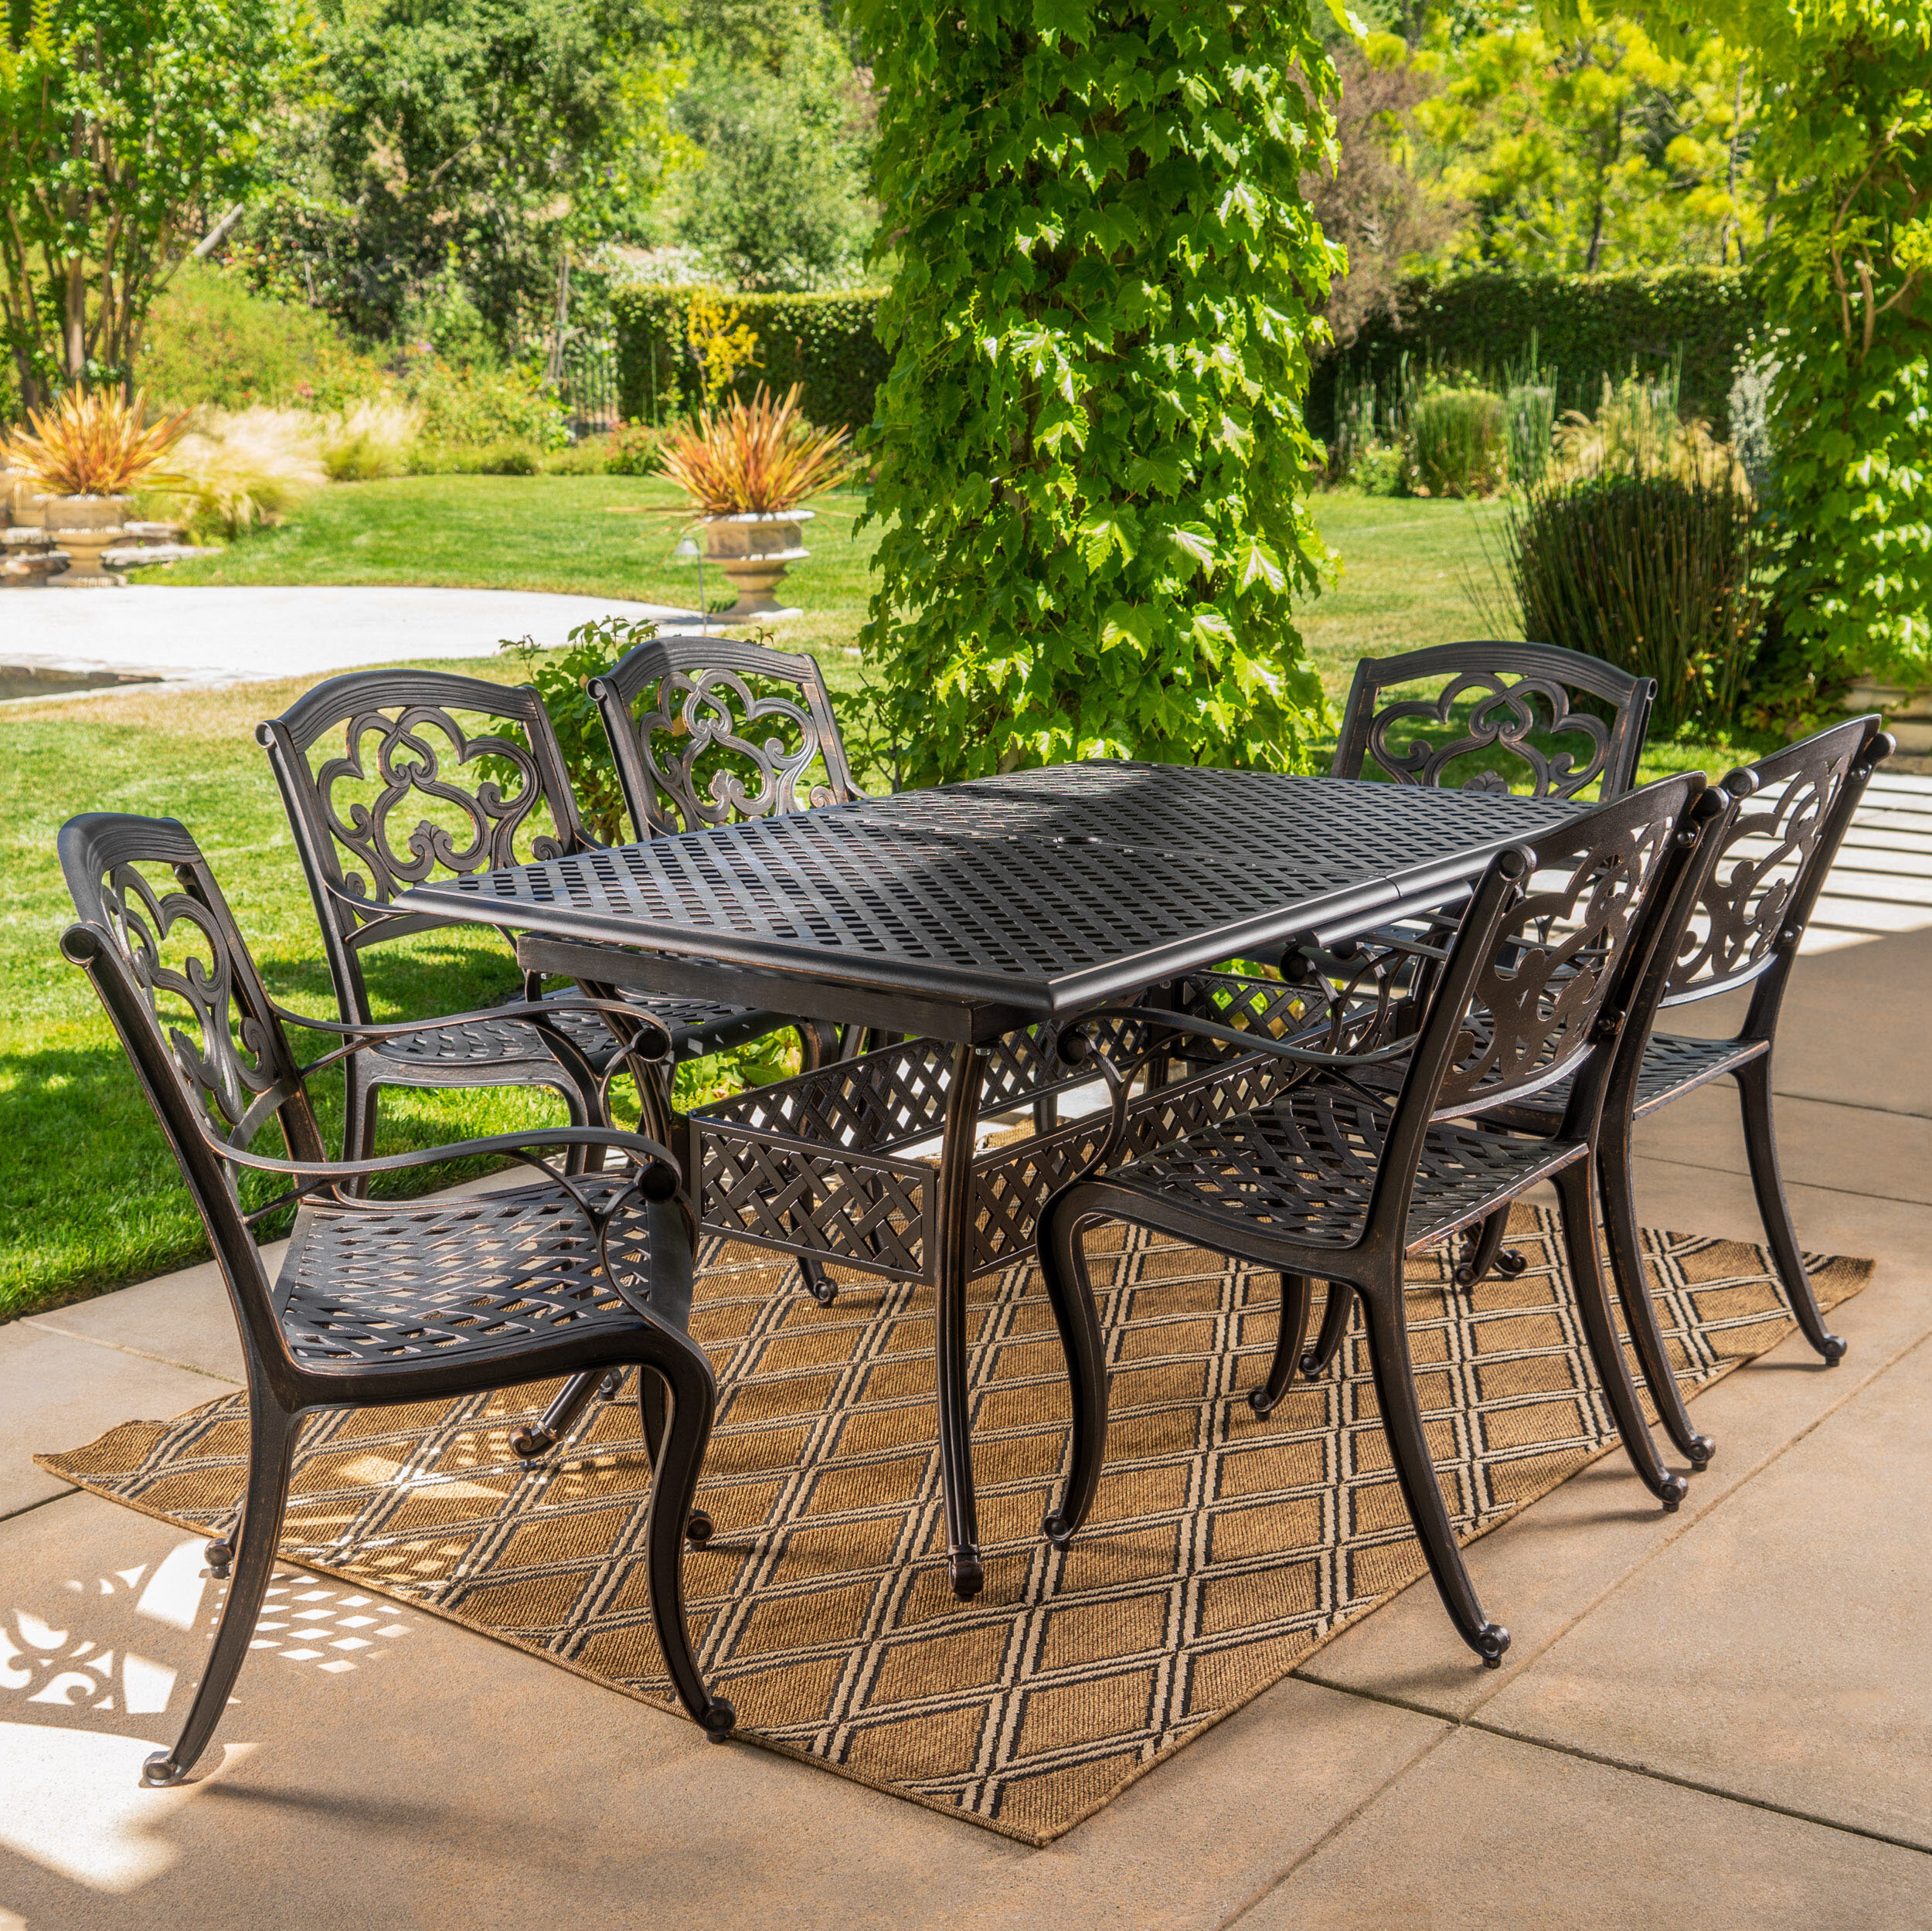 Darby Home Co Savannah 7 Piece Dining Set | Wayfair